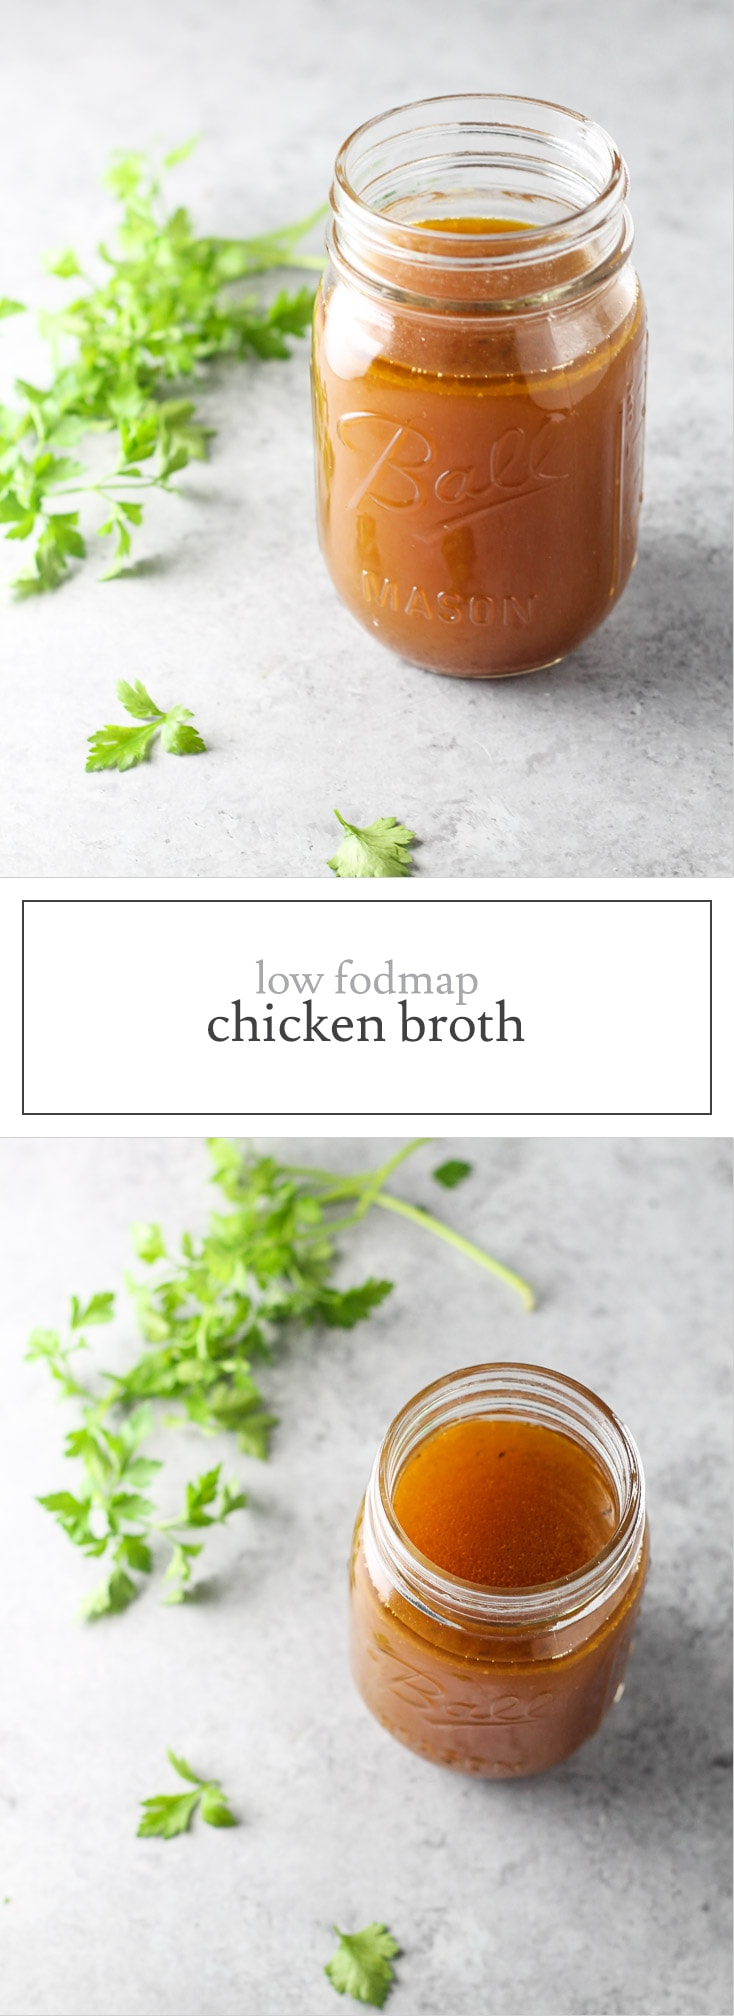 Easily add flavor to soups, pasta dishes and more with this Low FODMAP Chicken Broth recipe. And, it's made in slow cooker for extra ease!